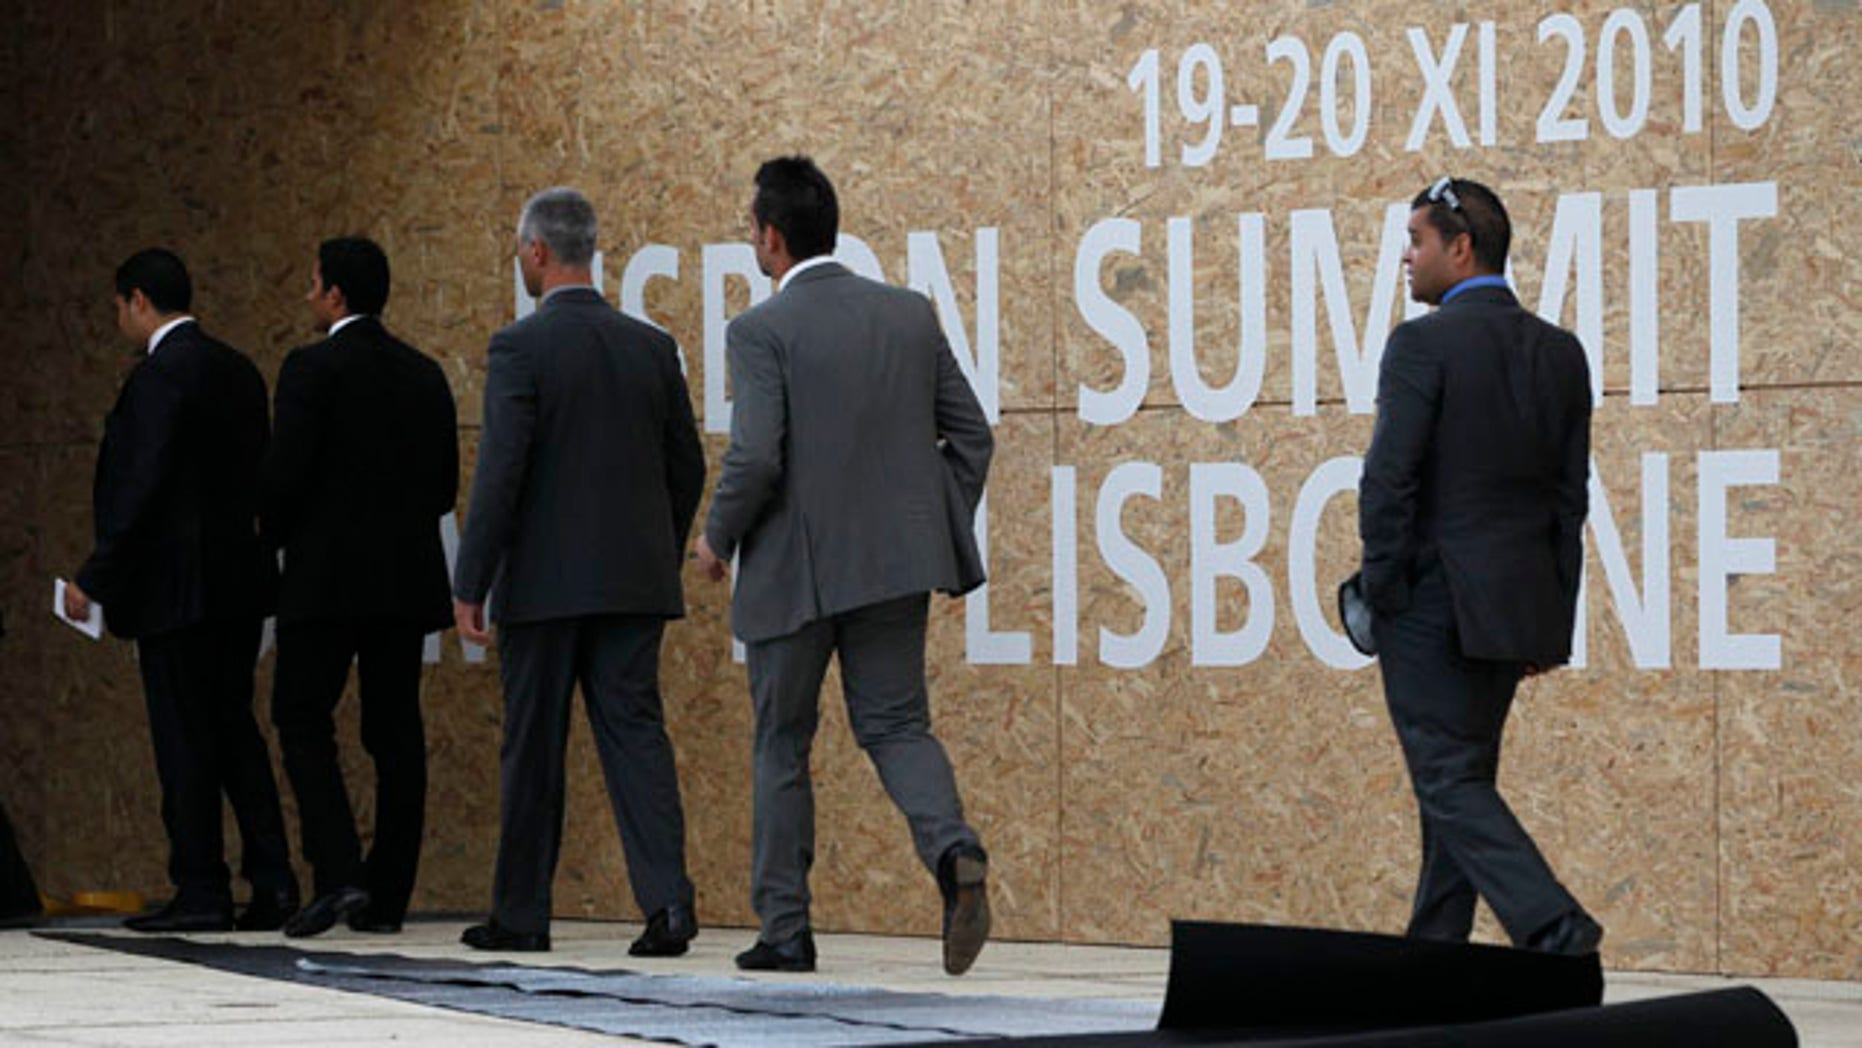 Nov. 18: Officials walk into NATO summit in Lisbon, Portugal where member countries will gather for a two day summit.